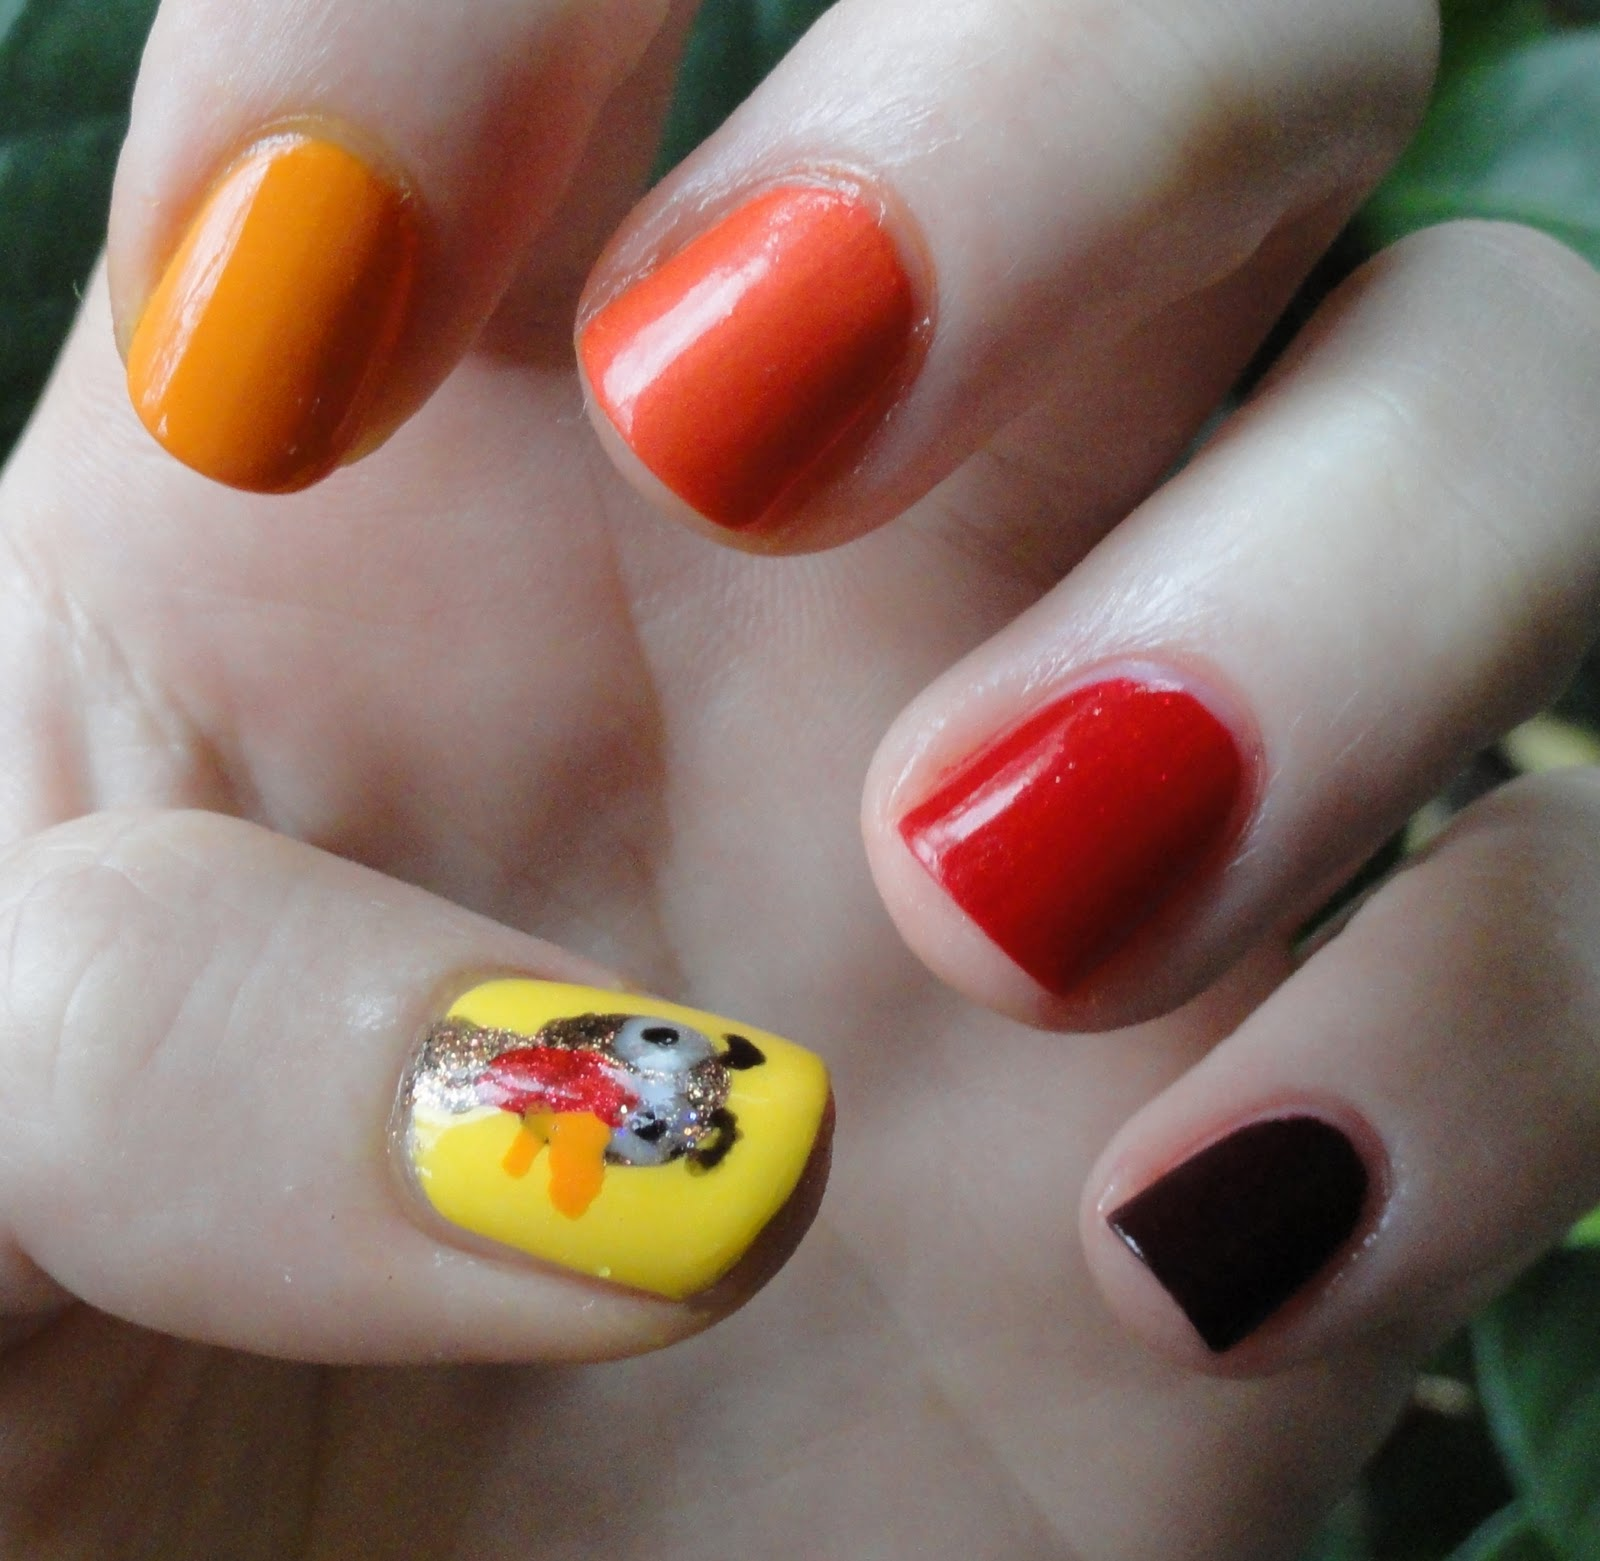 Prettyfulz Fall Nail Art Design 2011: Elemental Styles: Fall Nail Art